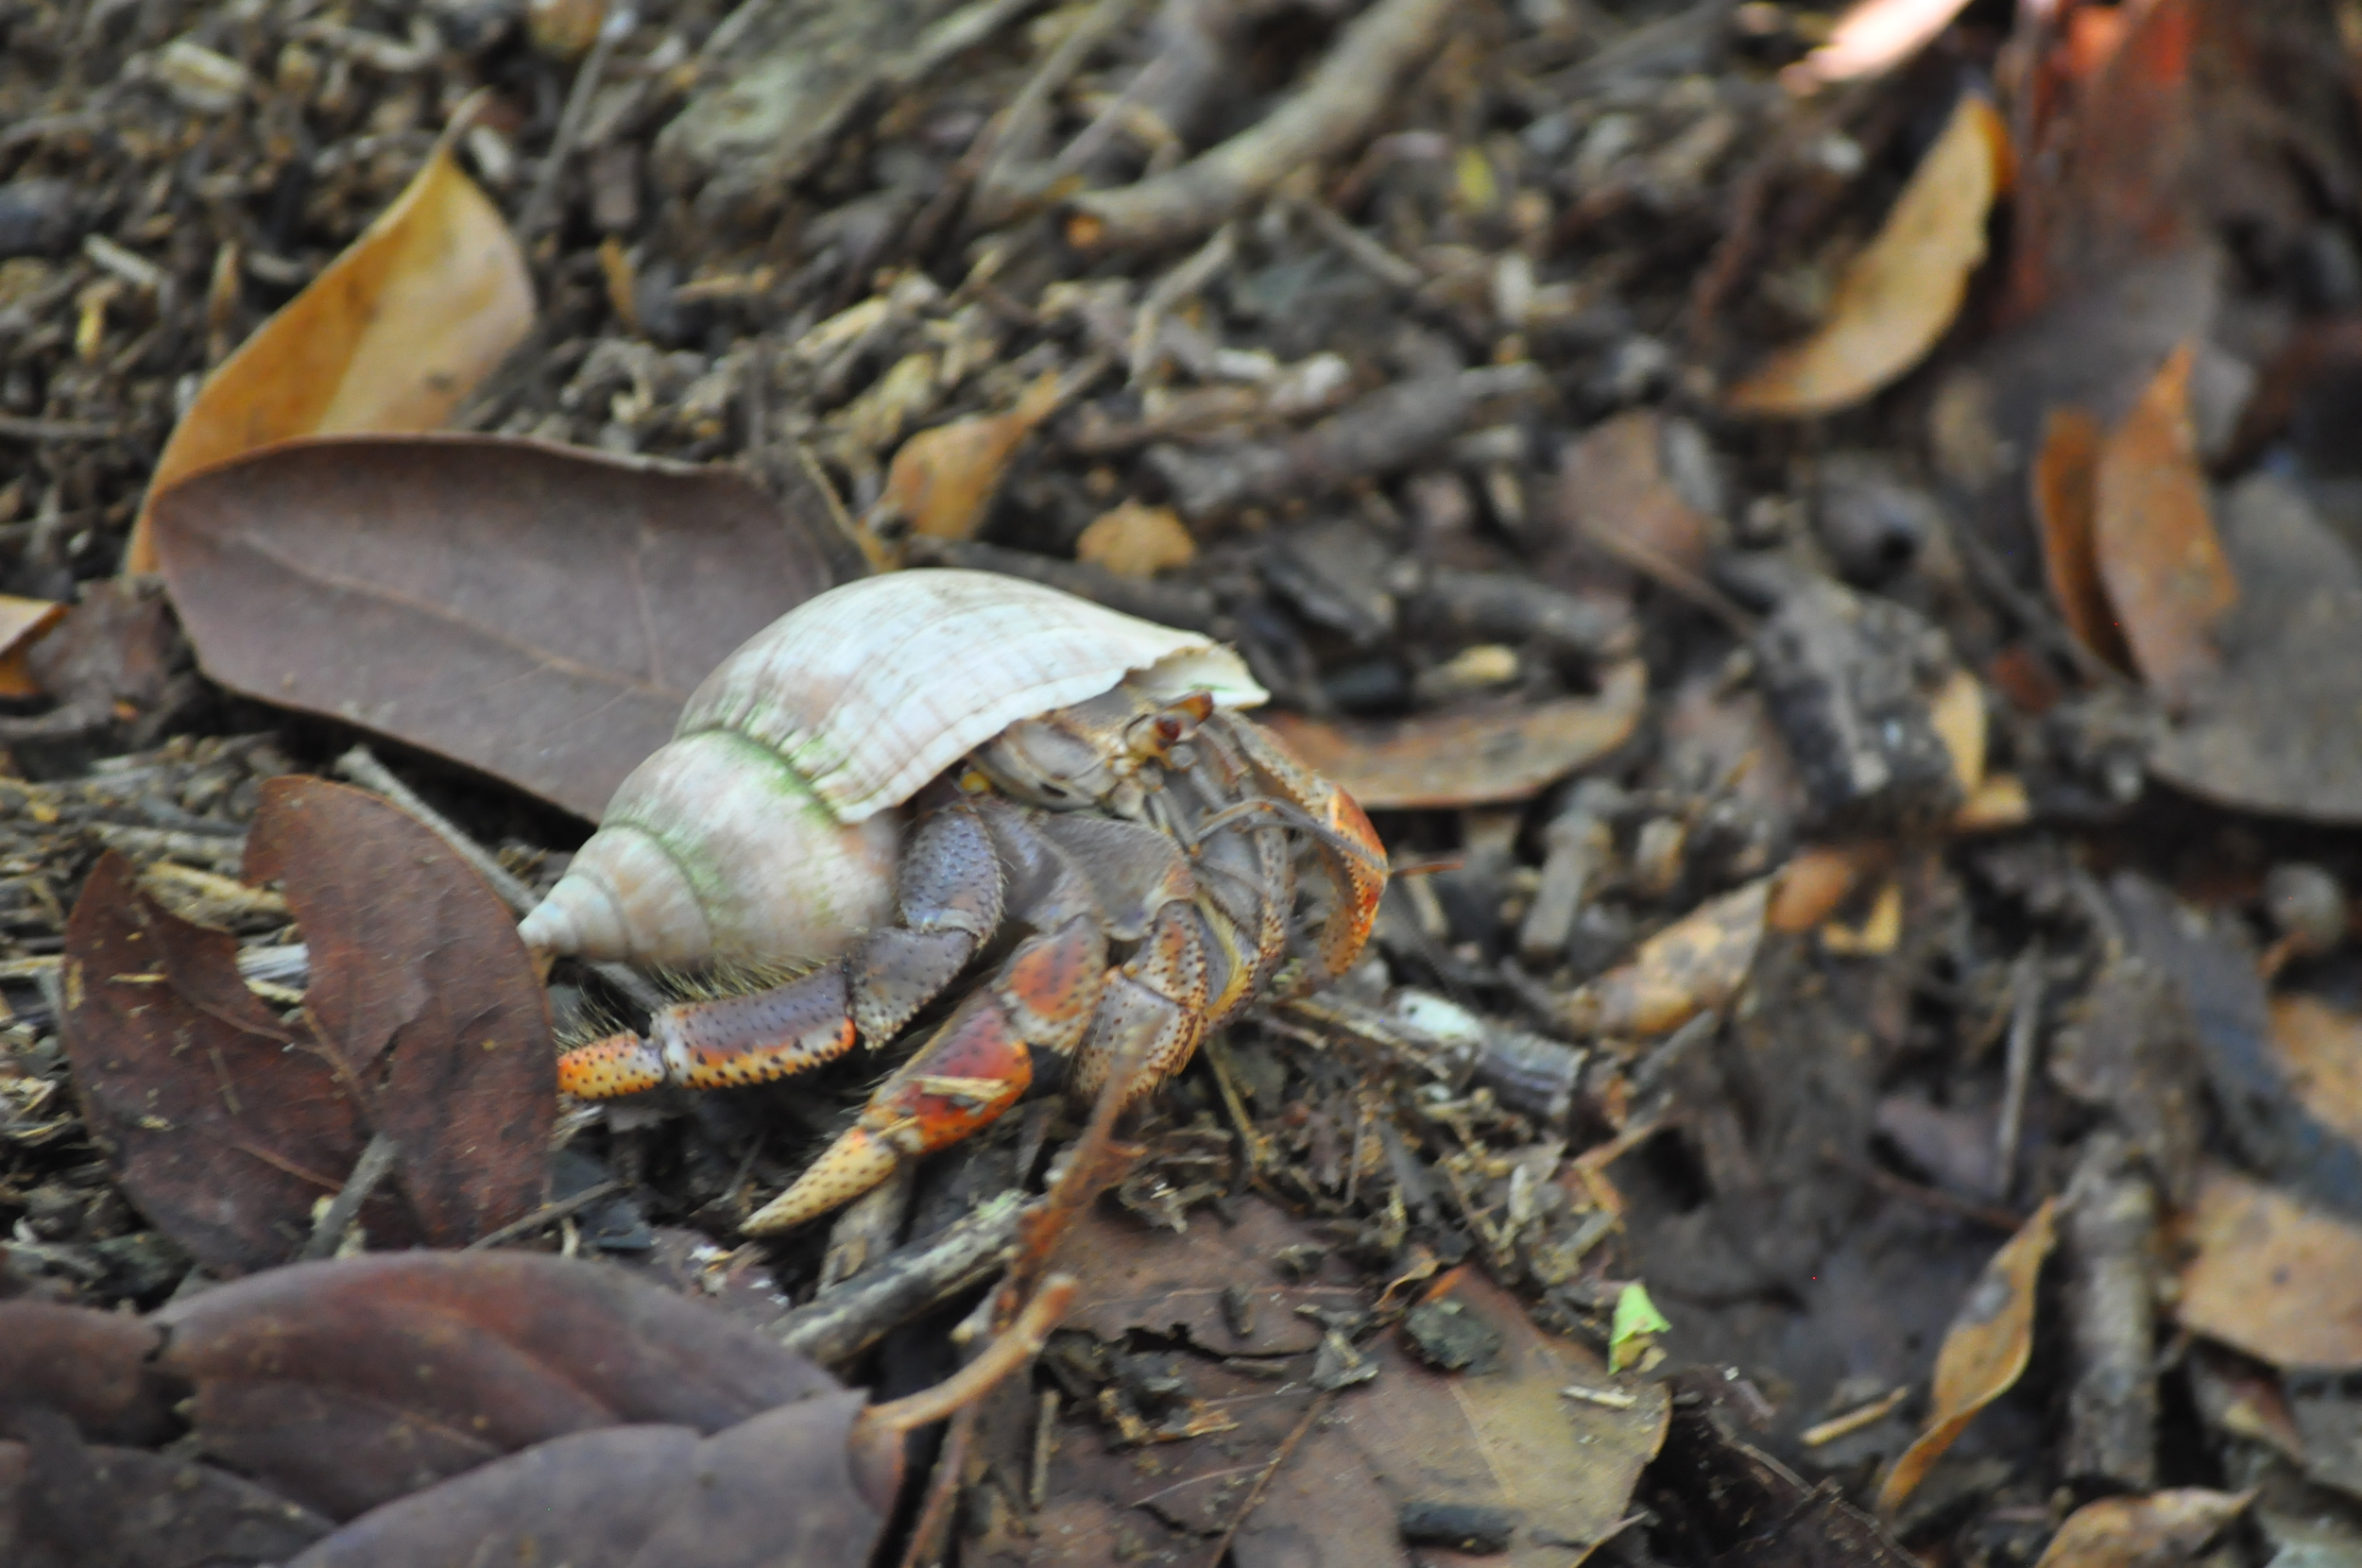 A hermit crab passed in front of us and Ray seized the opportunity to explain why leaving an empty shell is important: other hermit crabs can use it. Photo: Pamy Rojas